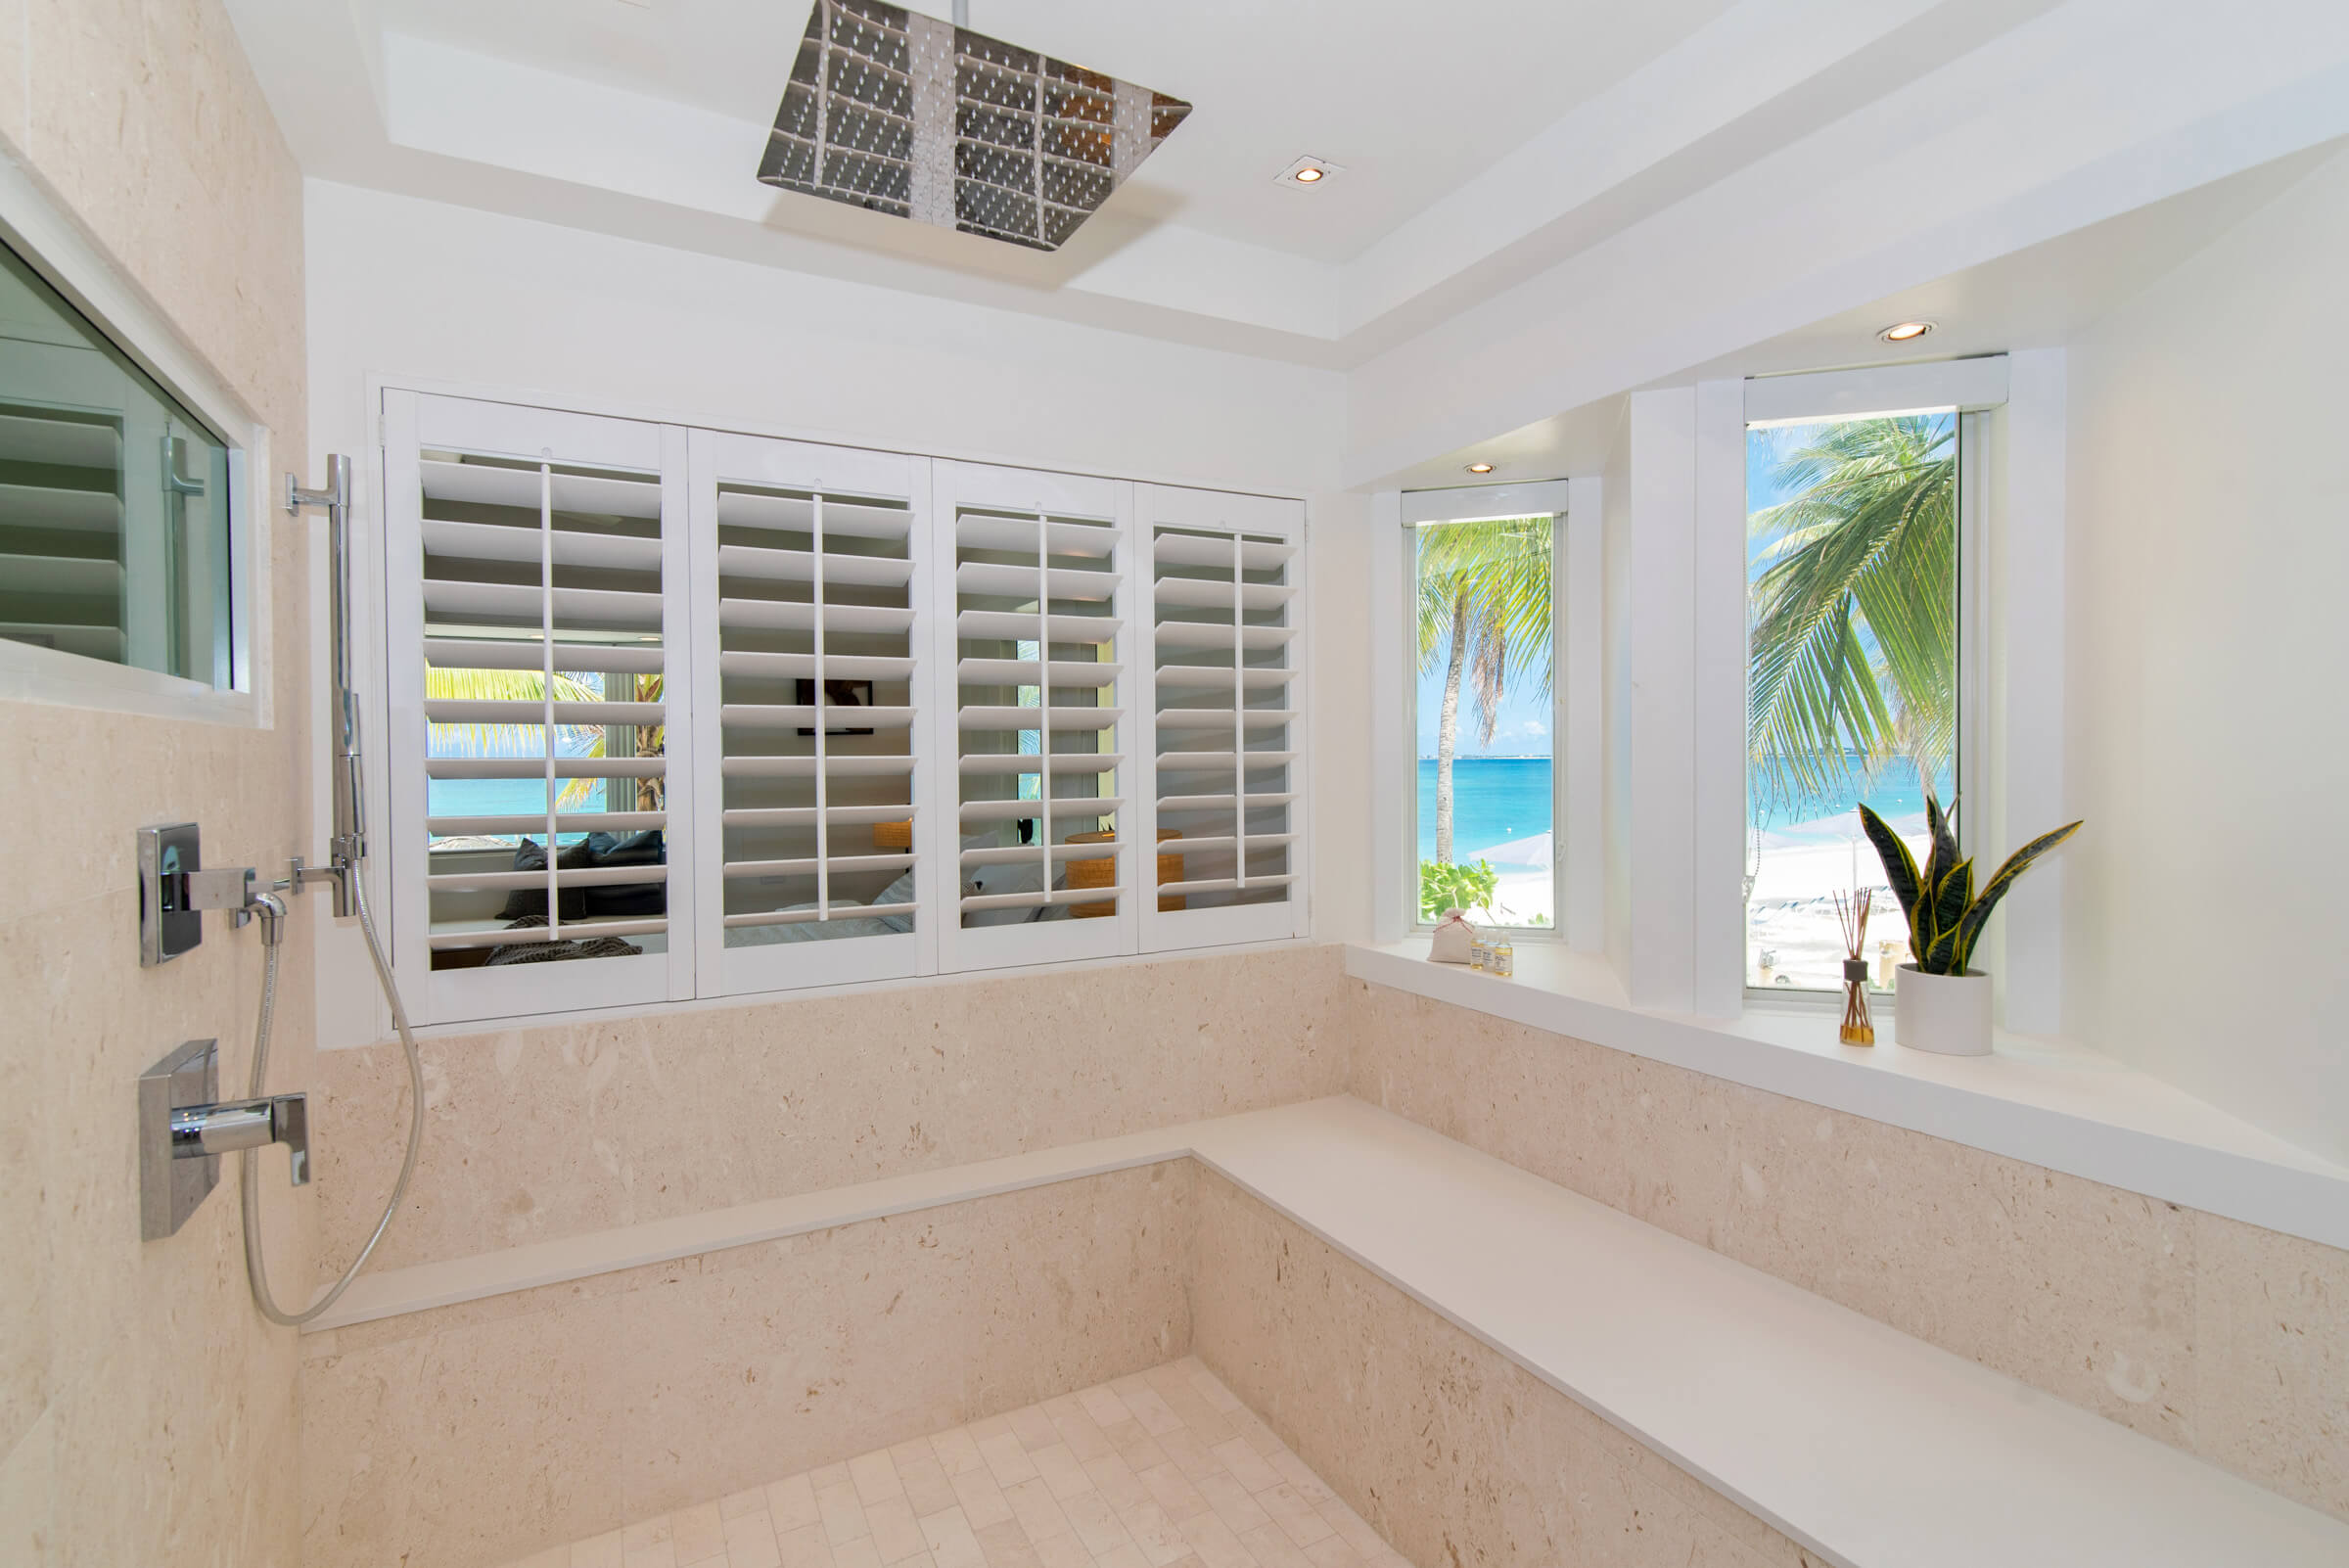 Seascape Villa Cayman Islands Grand Cayman Family Beachfront Luxury Caribbean Vacation Rental Large Master Bedrooms and Bathrooms